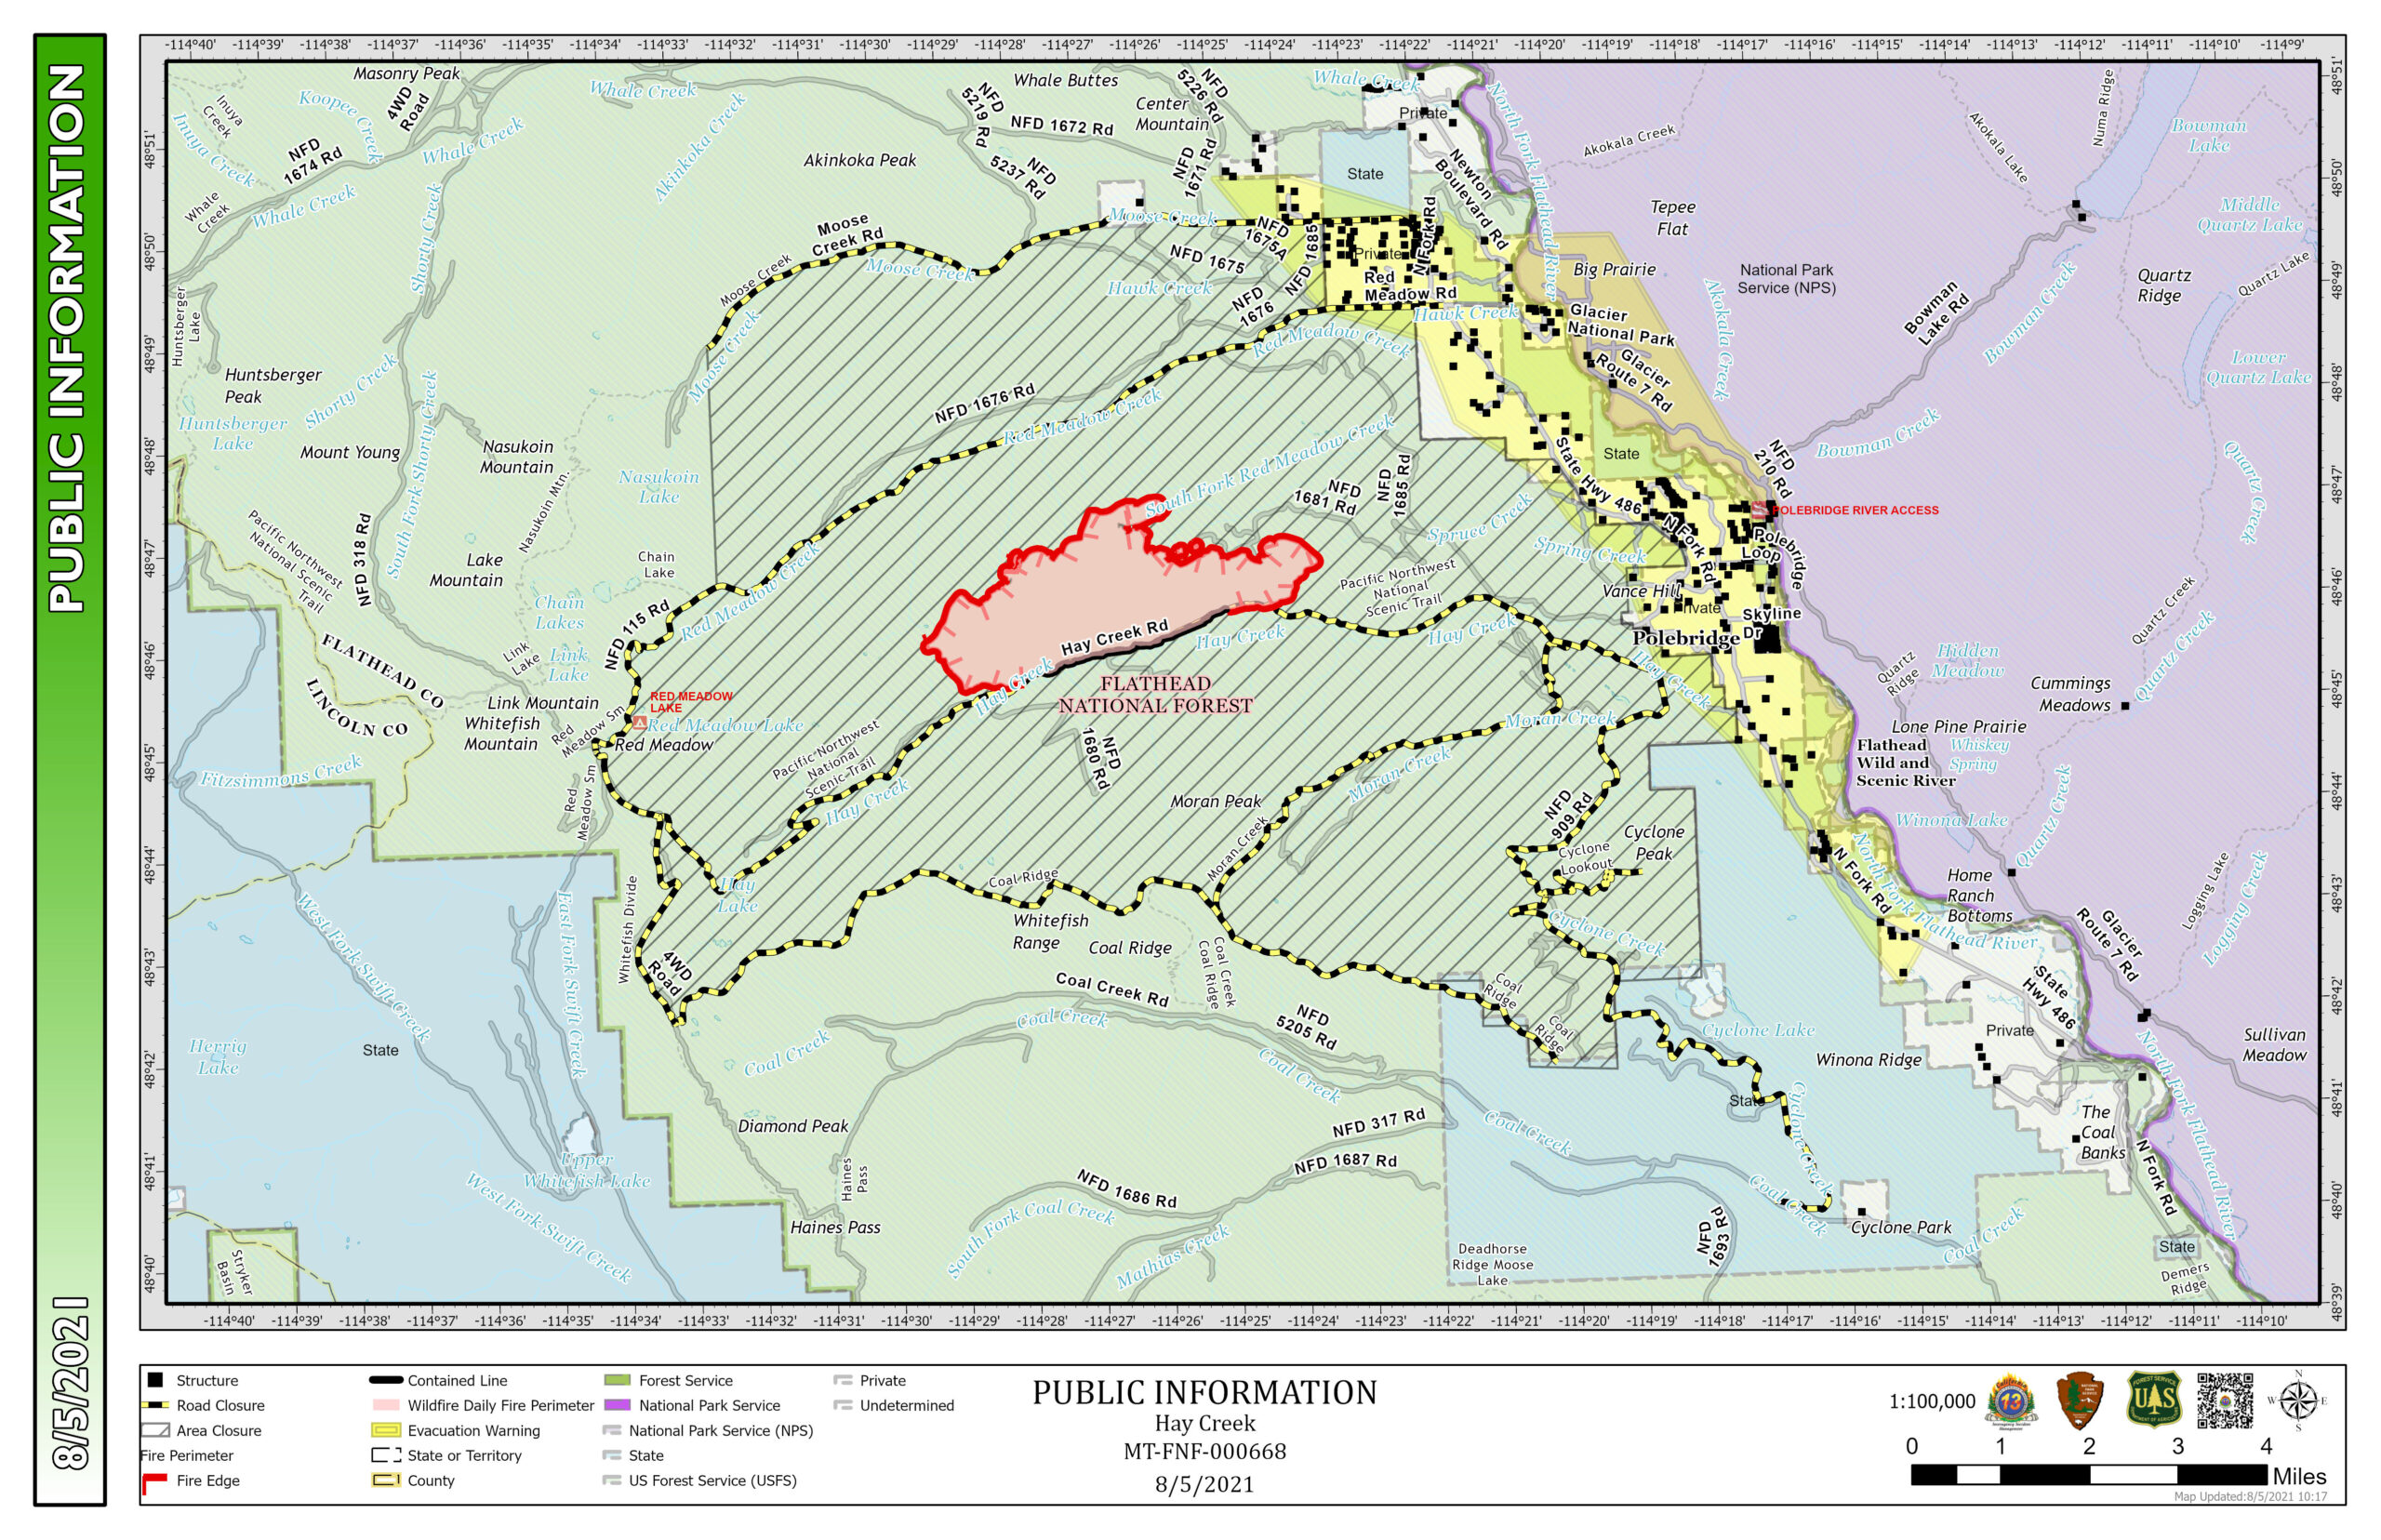 Hay Creek Fire Public Information Map, Aug 5, 2021 (updated)